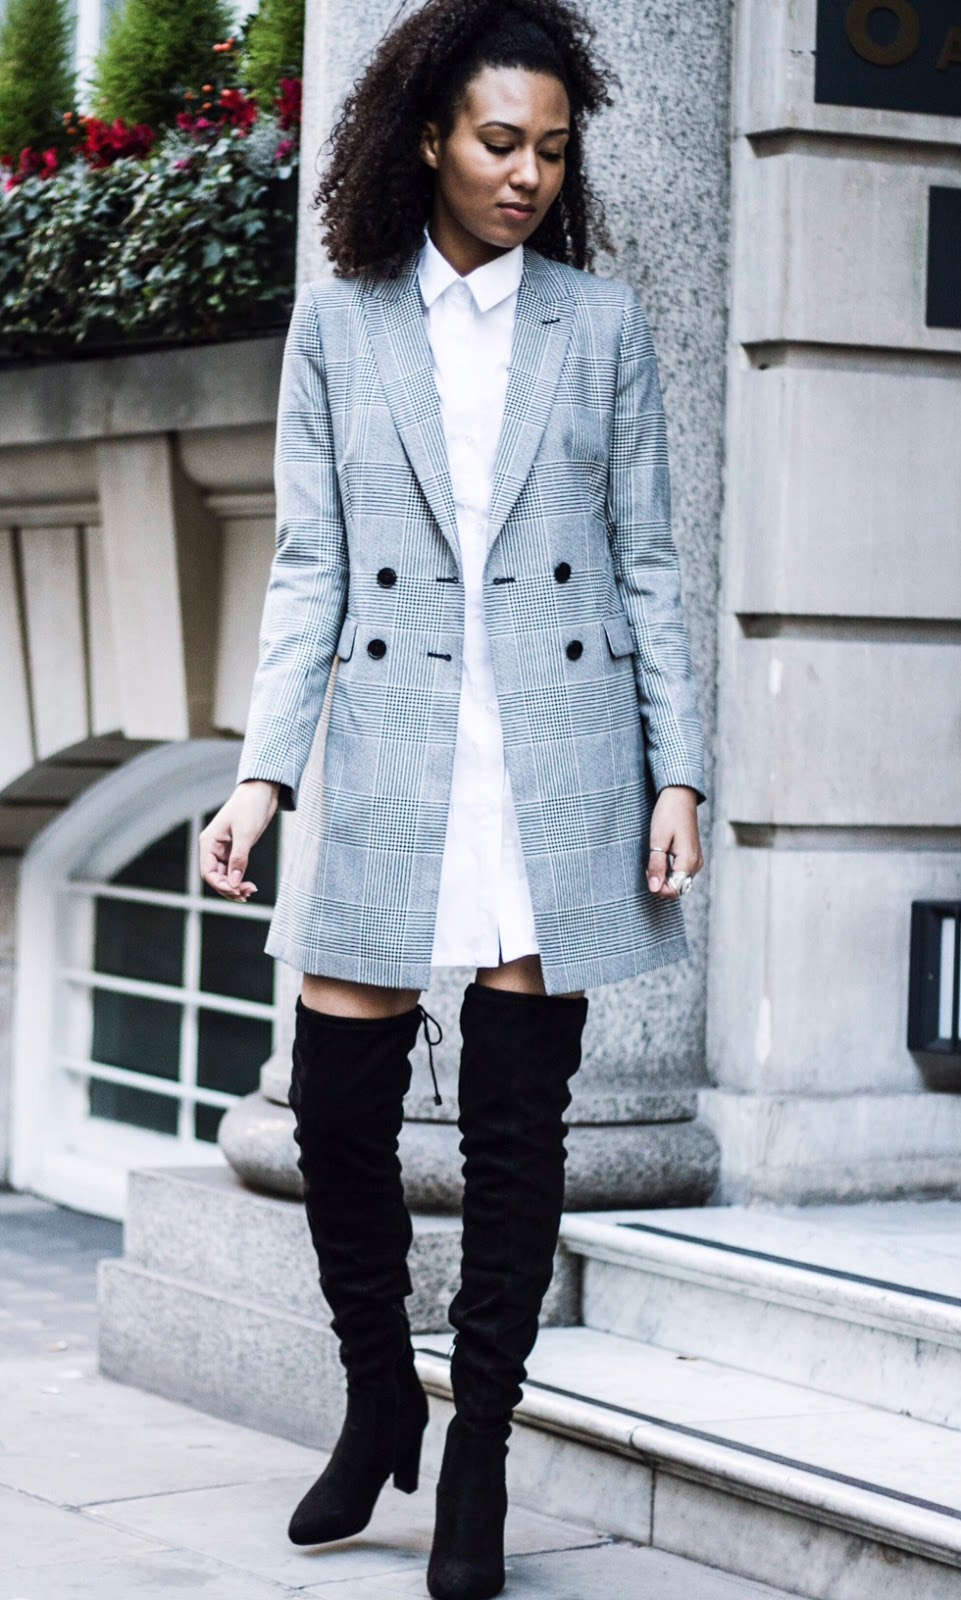 london street style fashion blogger otk boots stuart weitzman dupe